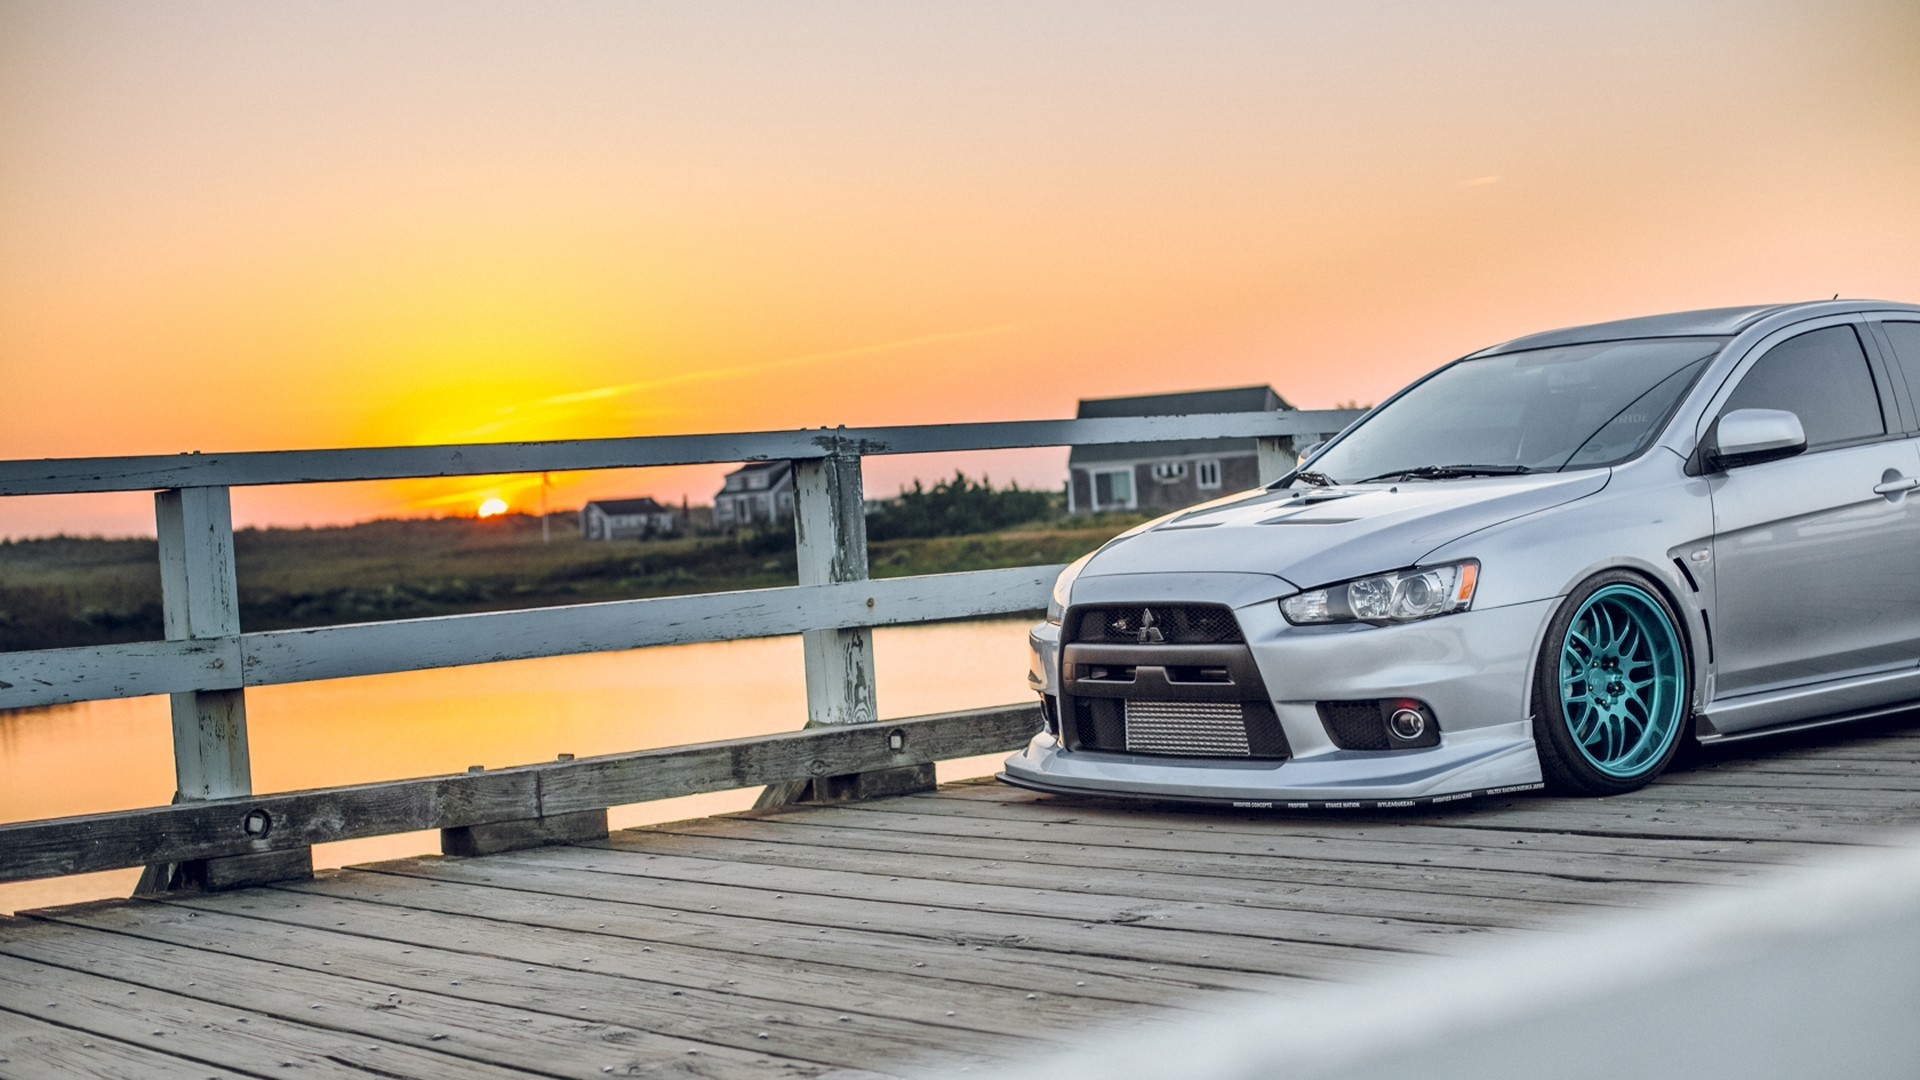 Evo 10 Wallpaper Cars Mitsubishi Lancer Evo X Wallpaper Allwallpaper In 6009